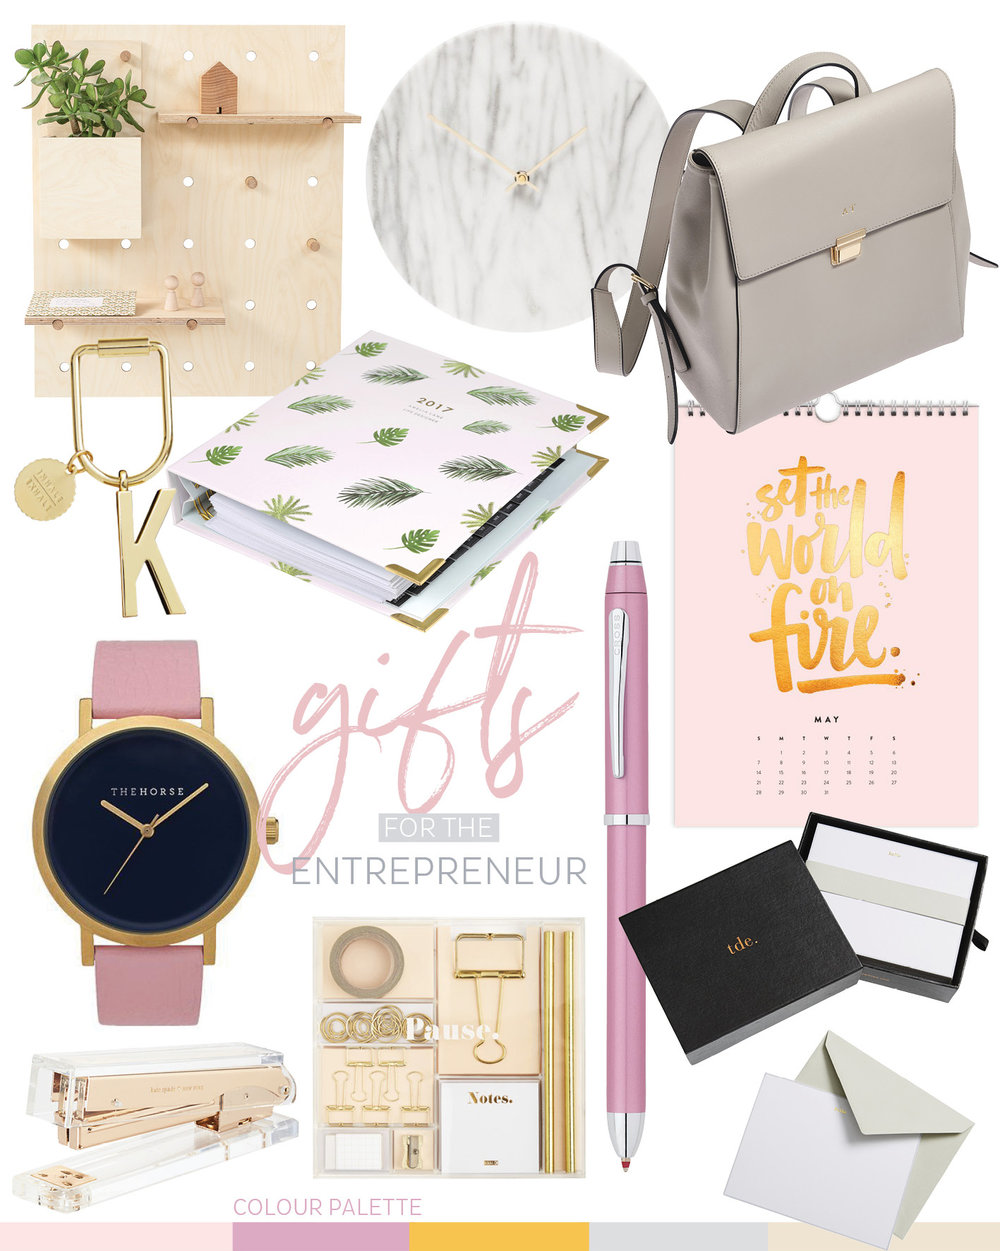 adore_giftguide_NEW_christmas_presents_entrepreneur_office_supplies_stationery_worker_chic.jpg